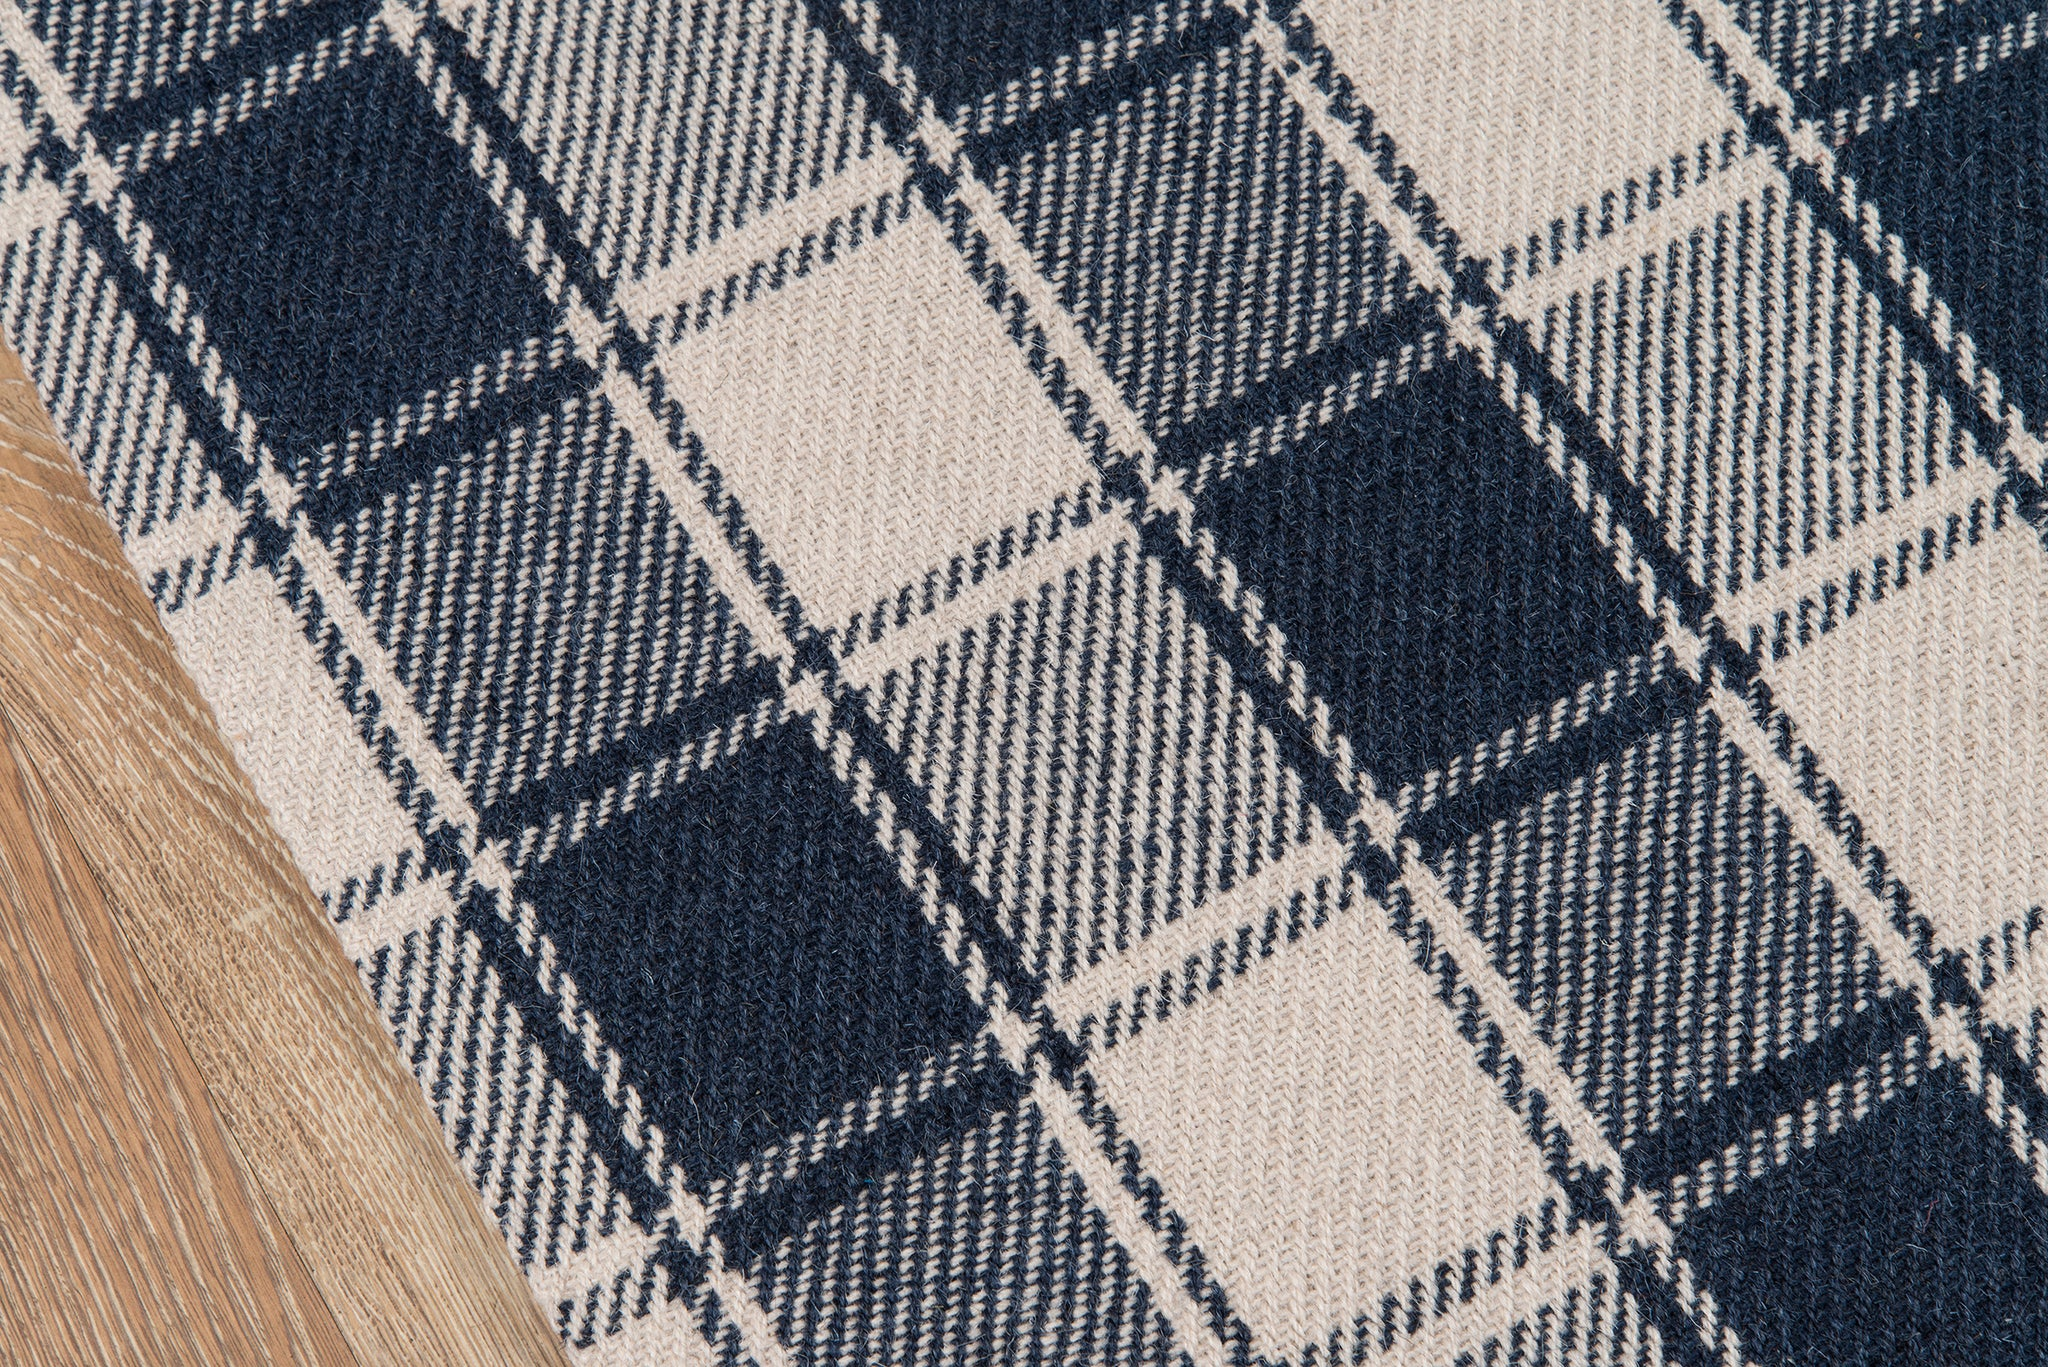 Navy Blue Plaid Tartan Wool Rug - Erin Gates - Marlborough